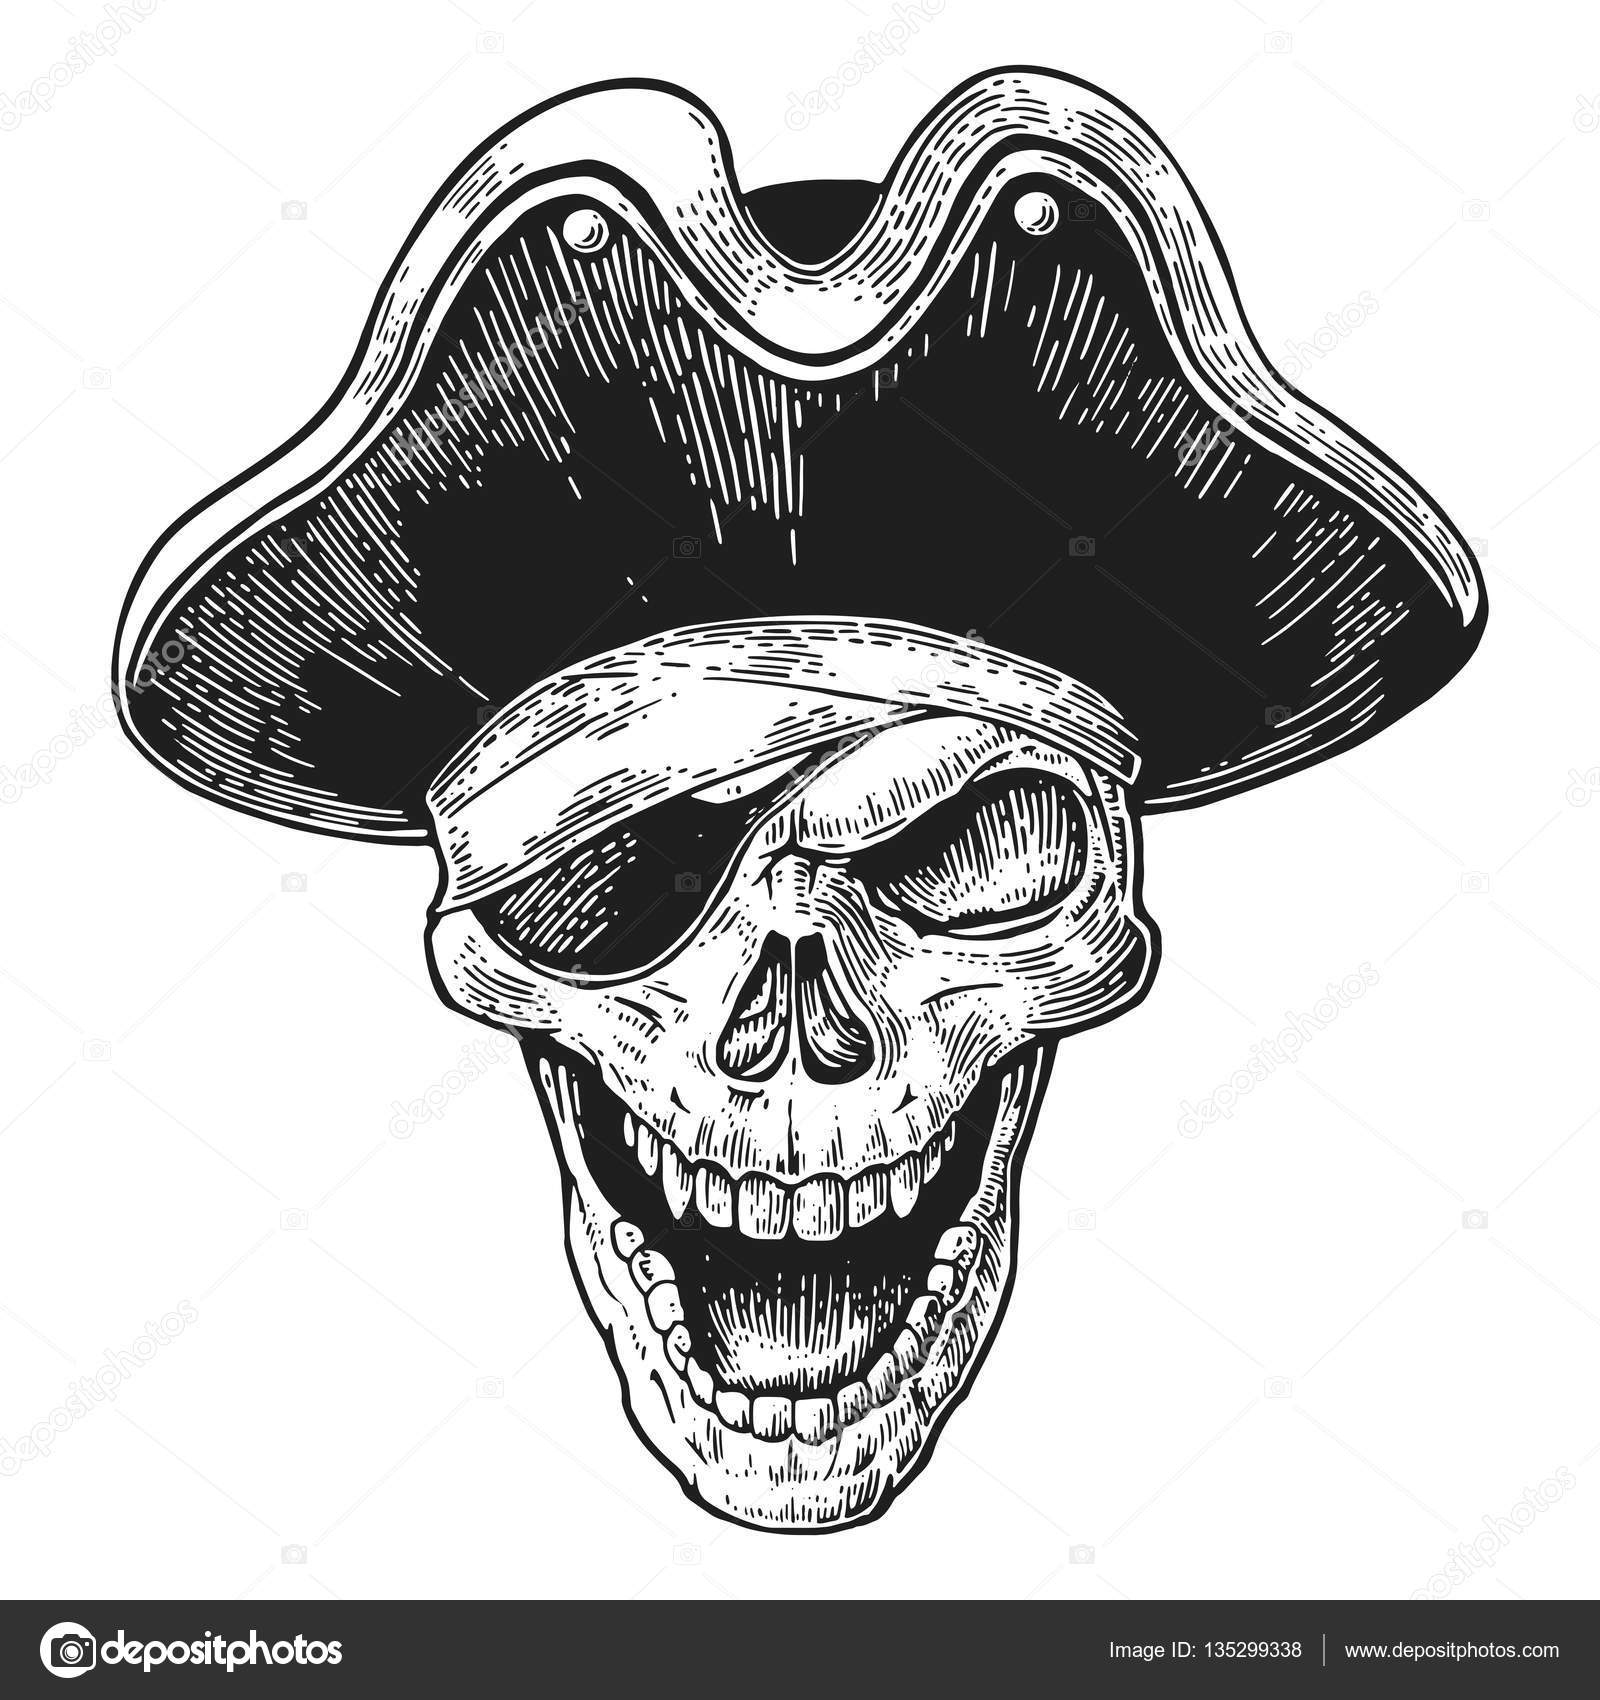 skull in pirate clothes eye patch and hat smiling black. Black Bedroom Furniture Sets. Home Design Ideas